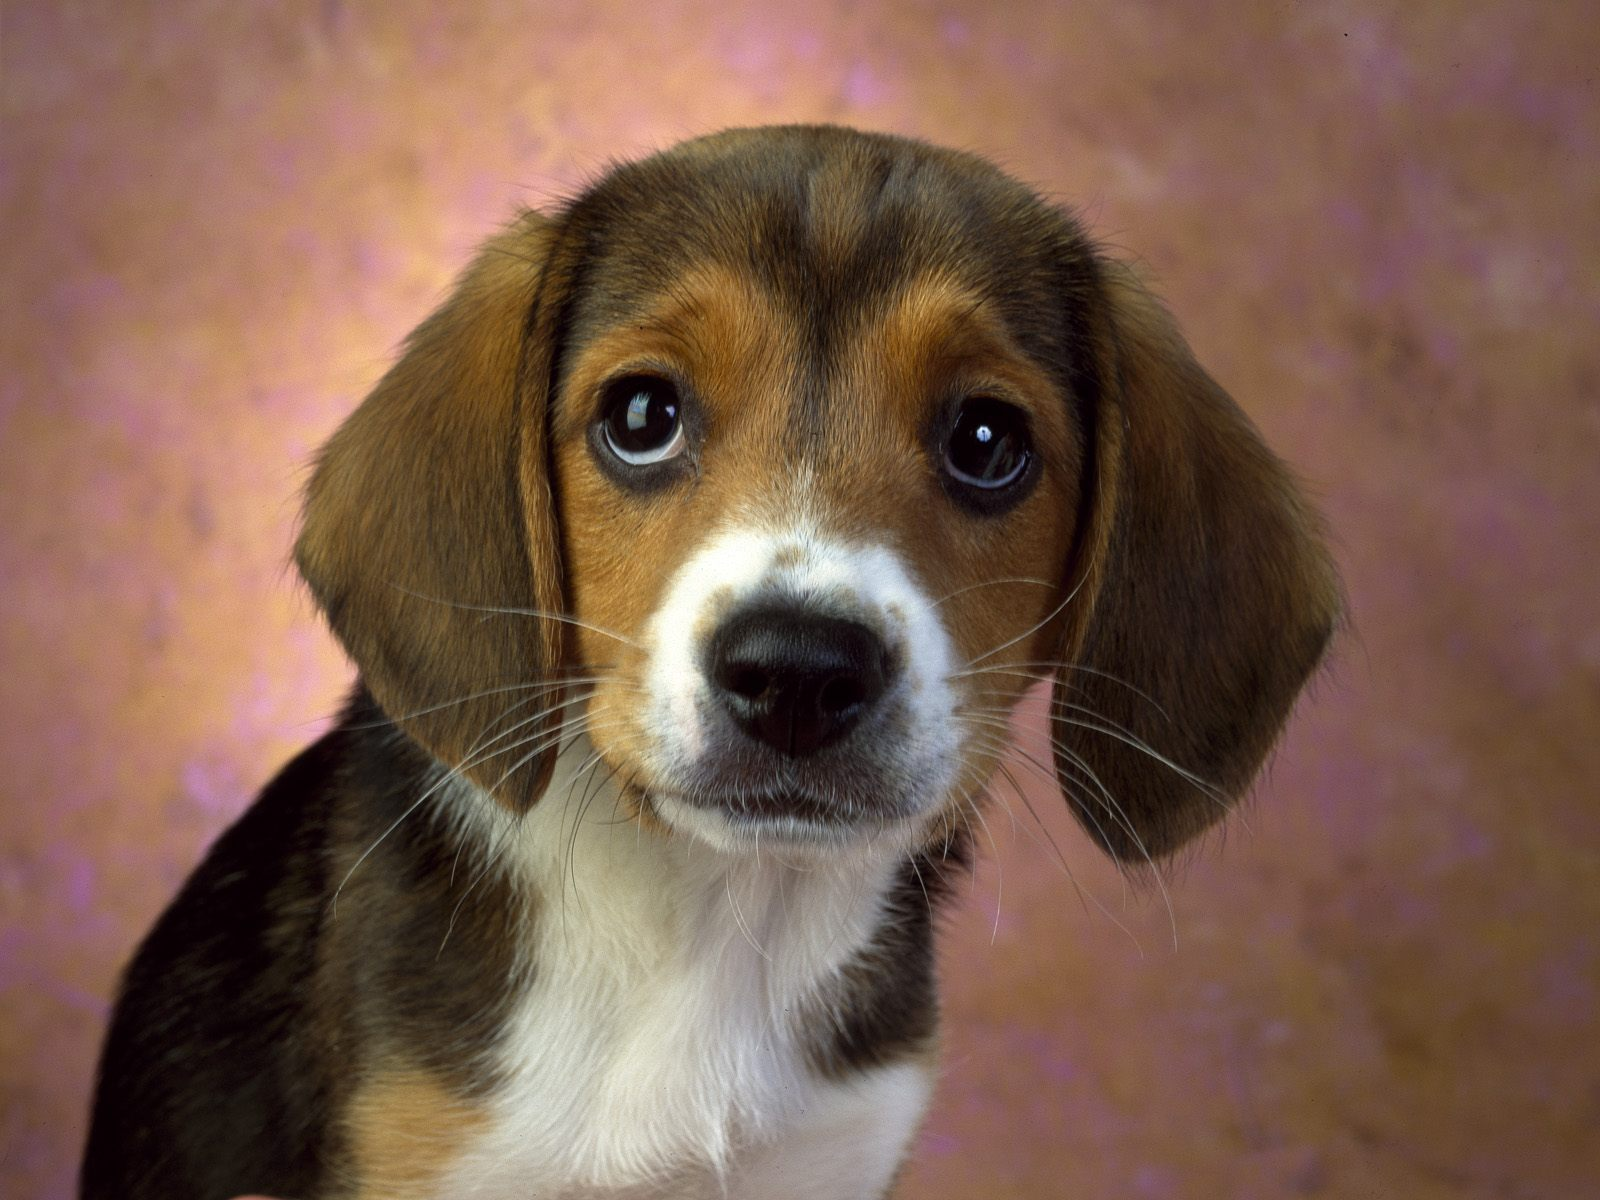 hound dogs images beagle puppy dog :) hd wallpaper and background